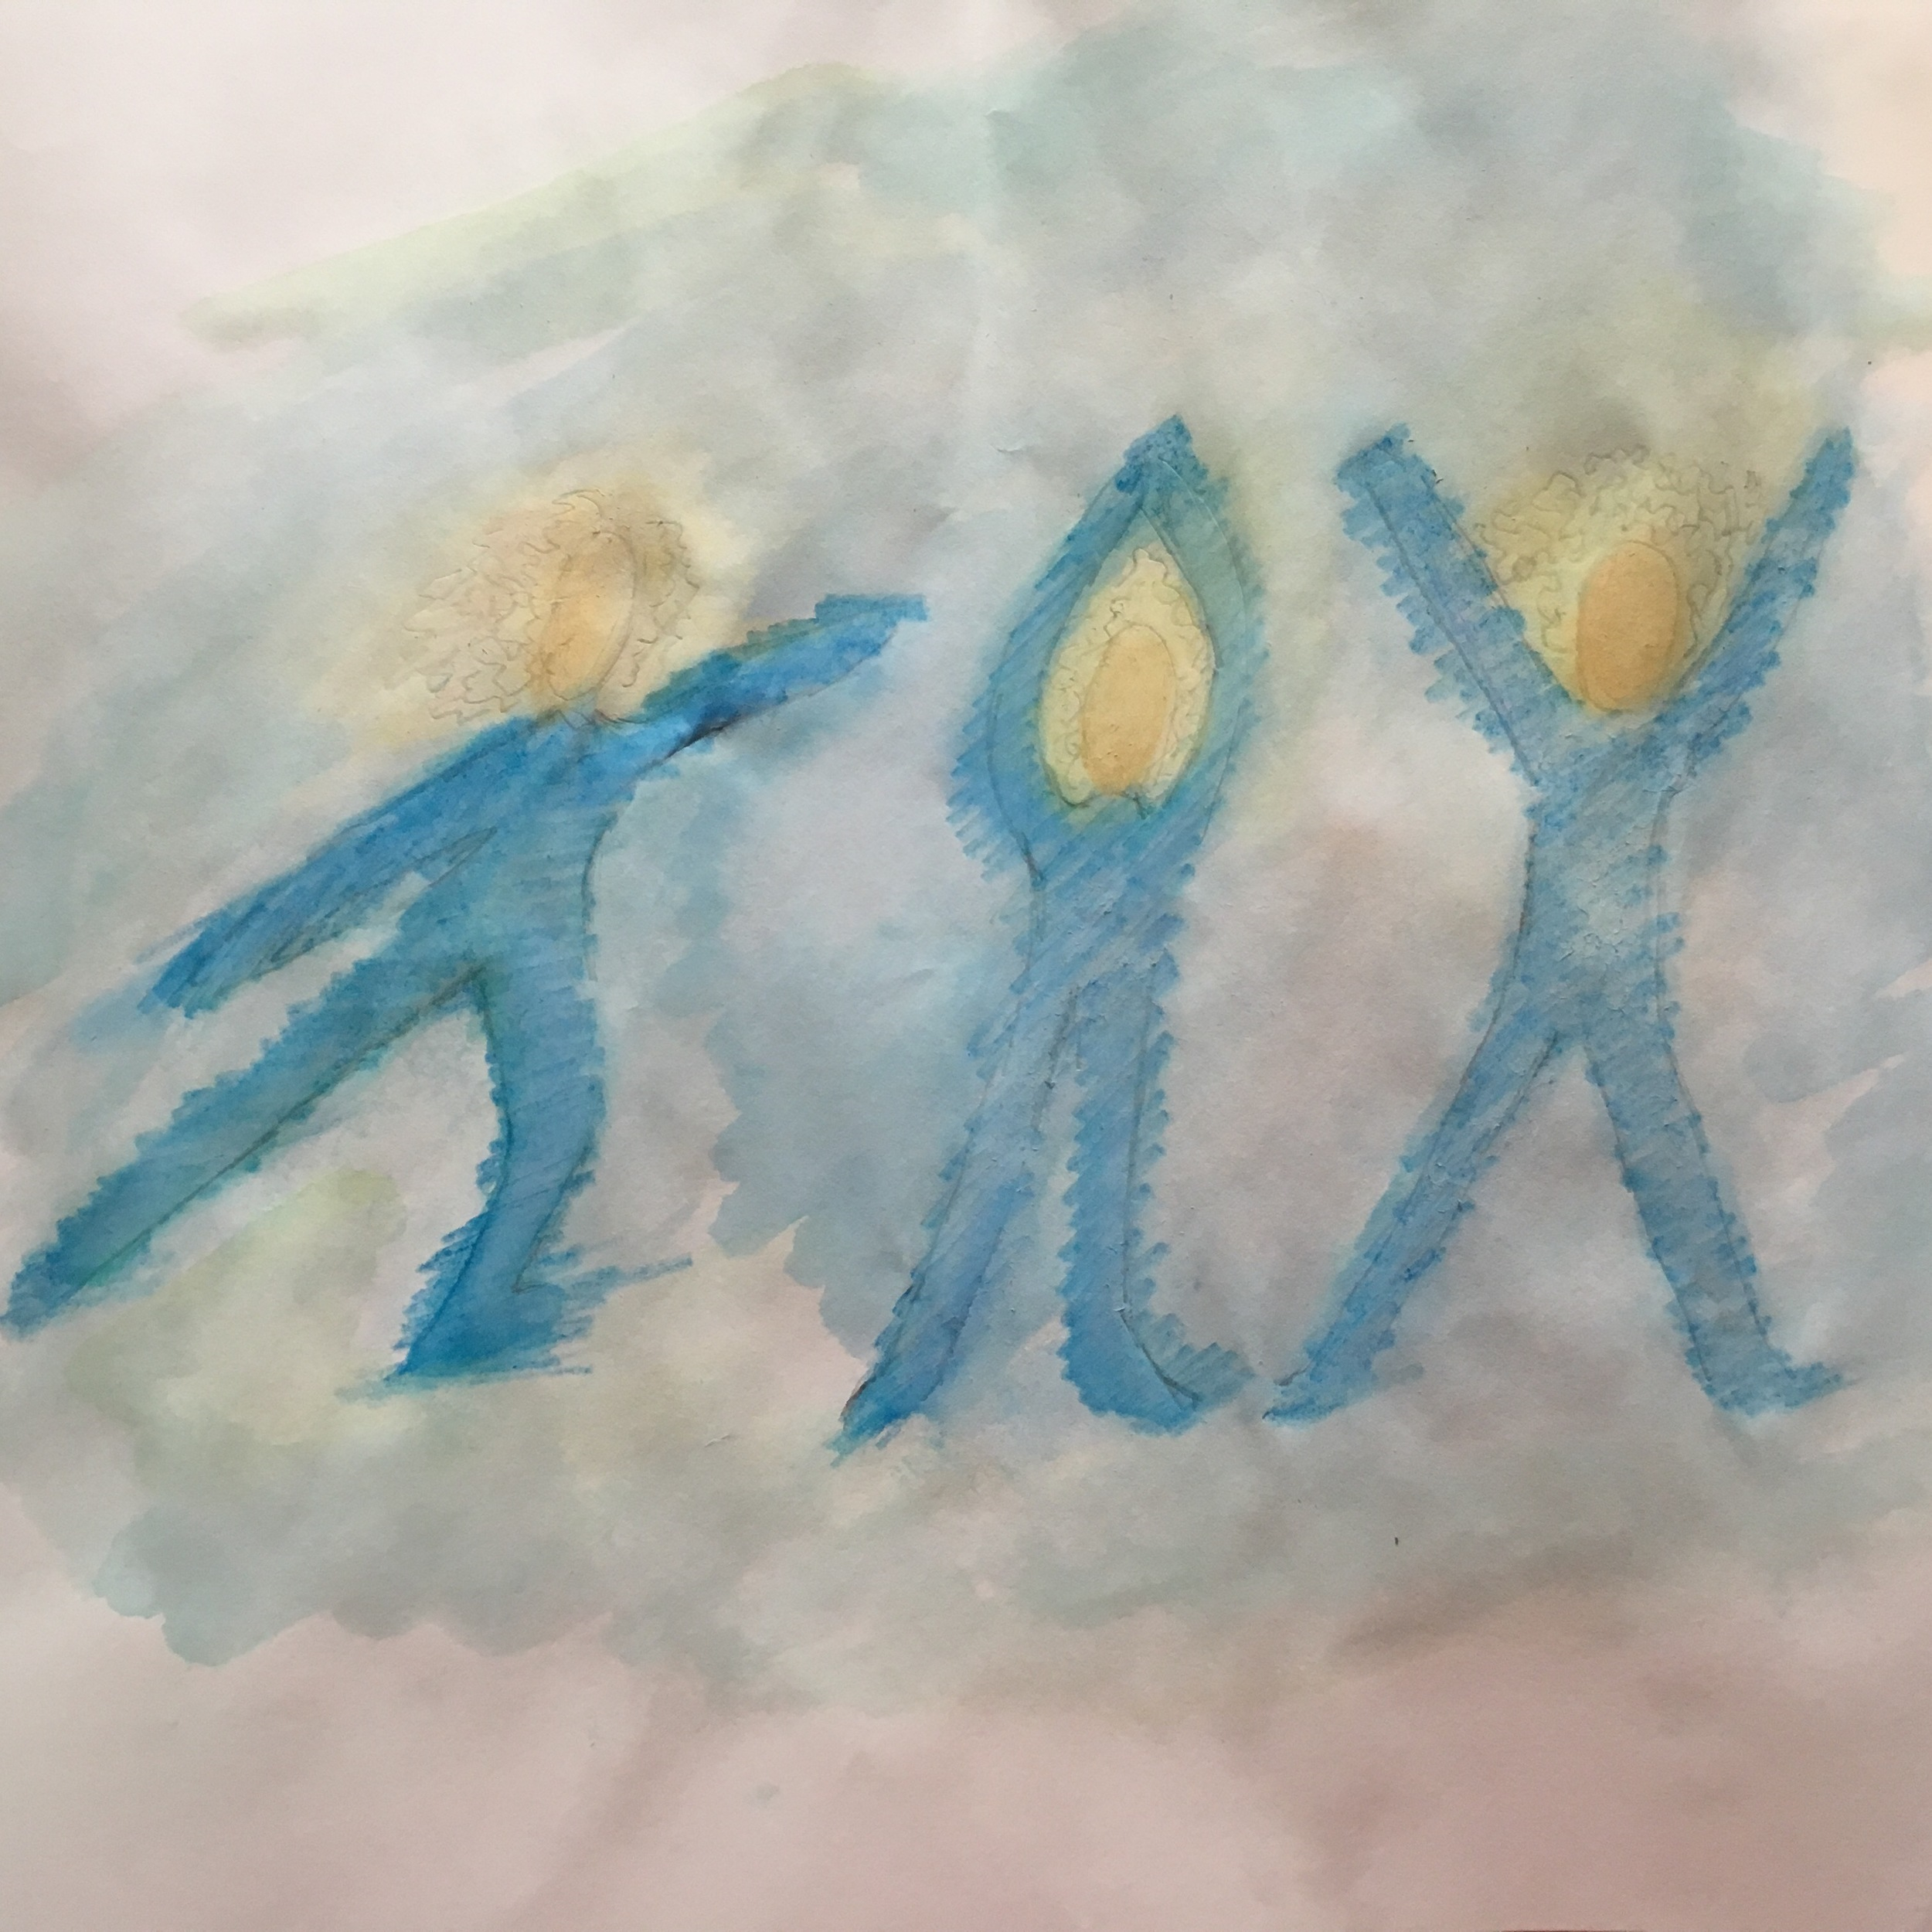 """A watercolor painting I did in art therapy class to express my newfound joy, depicting me dancing. It was pointed out to me that the dancing figures look like they're forming the word """"joy""""."""